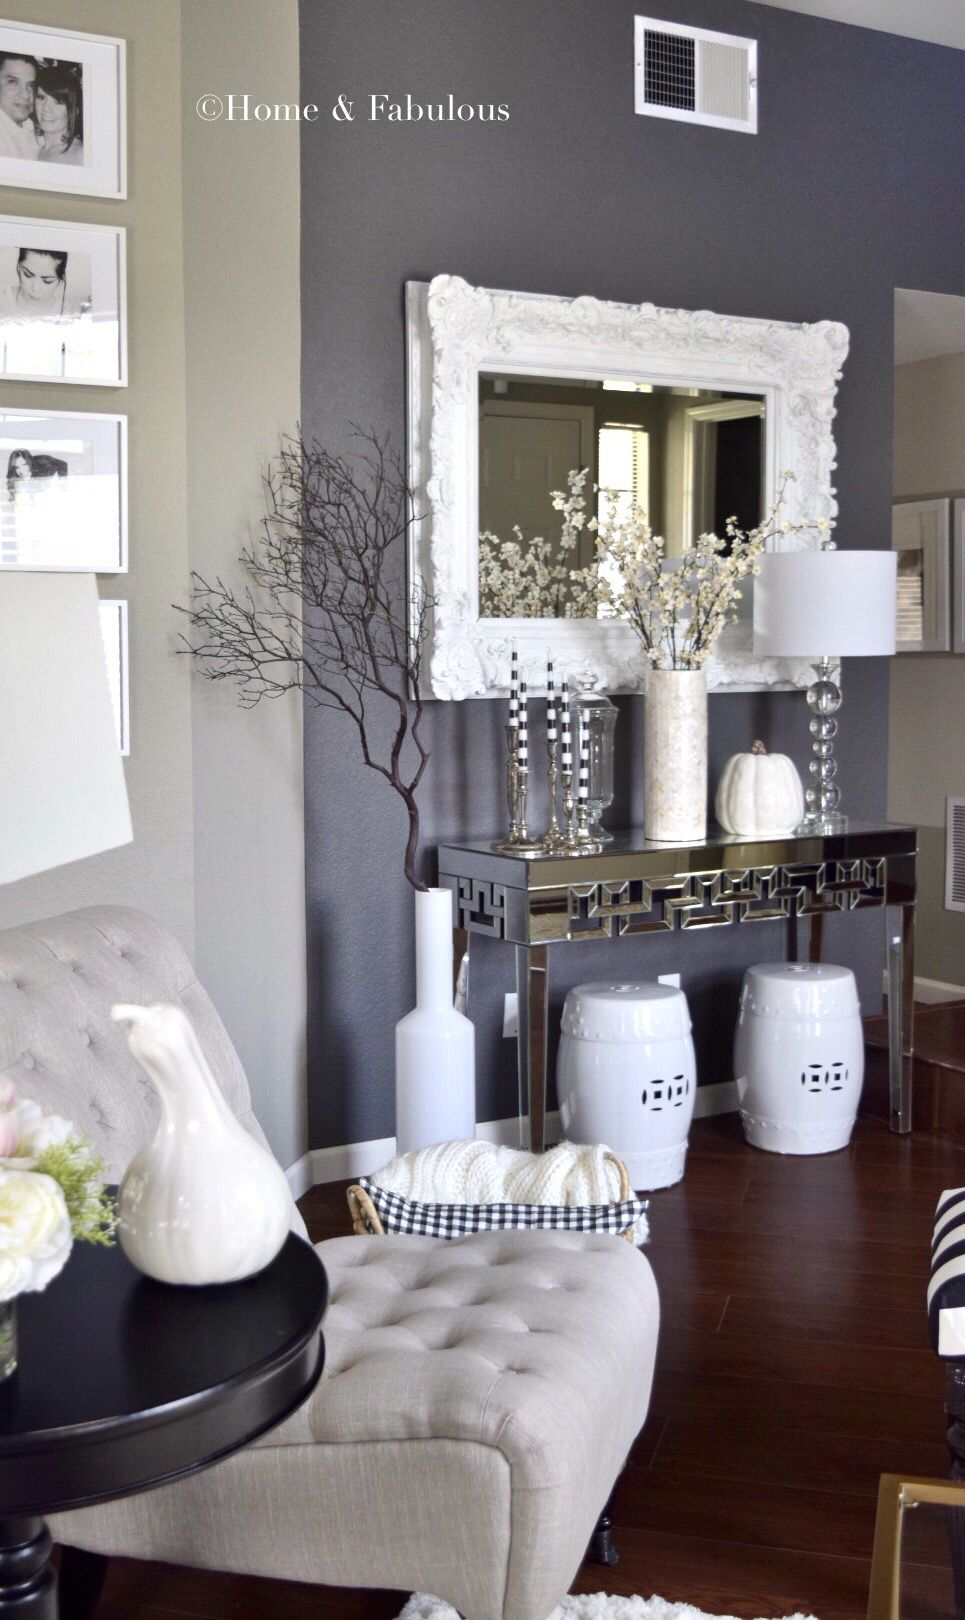 Decor Furniture Room Decor Furniture Interior Design Idea Neutral Room Beige